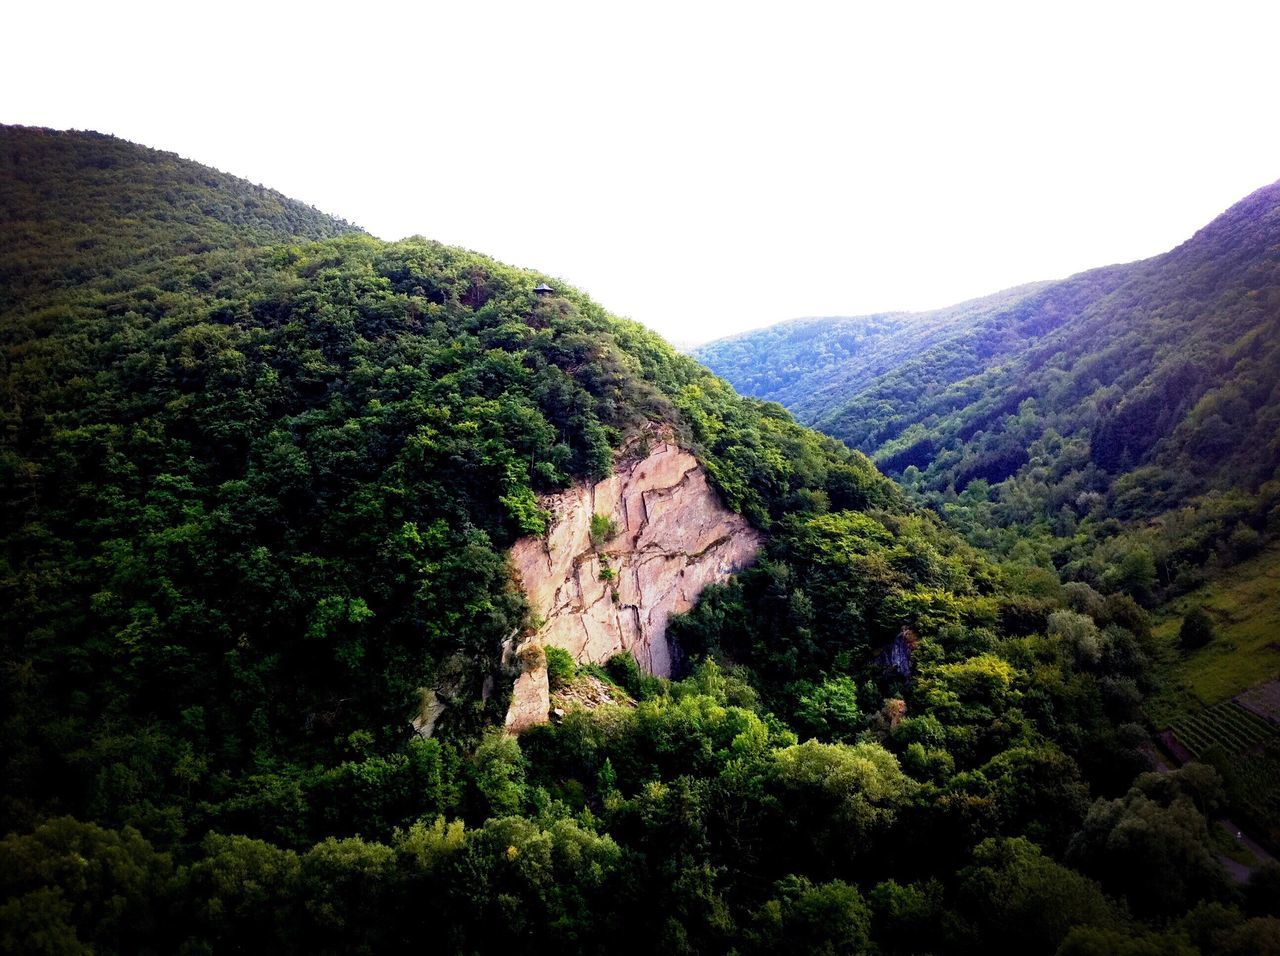 Flying High Nature Landscape Mountain Beauty In Nature Scenics Tranquility Tranquil Scene Mountain Peak Forest Outdoors View From Above New Perspectives High Angle View Aerial View EyeEm Nature Lover